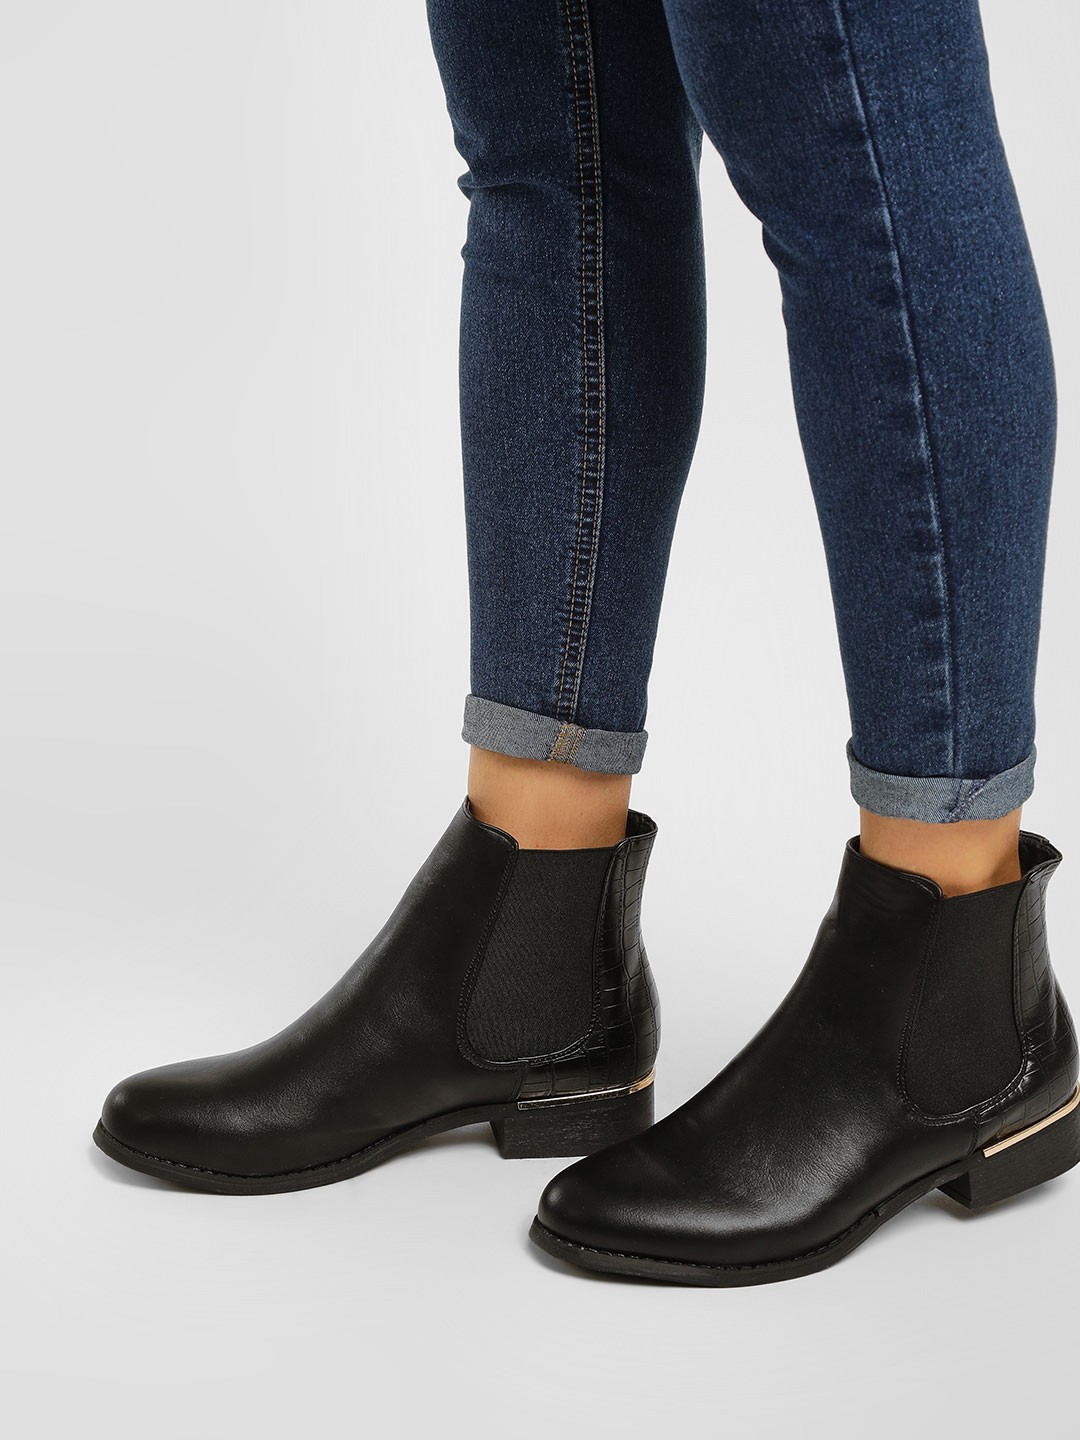 Truffle Collection Black Textured Tab Ankle Heeled Boots 1